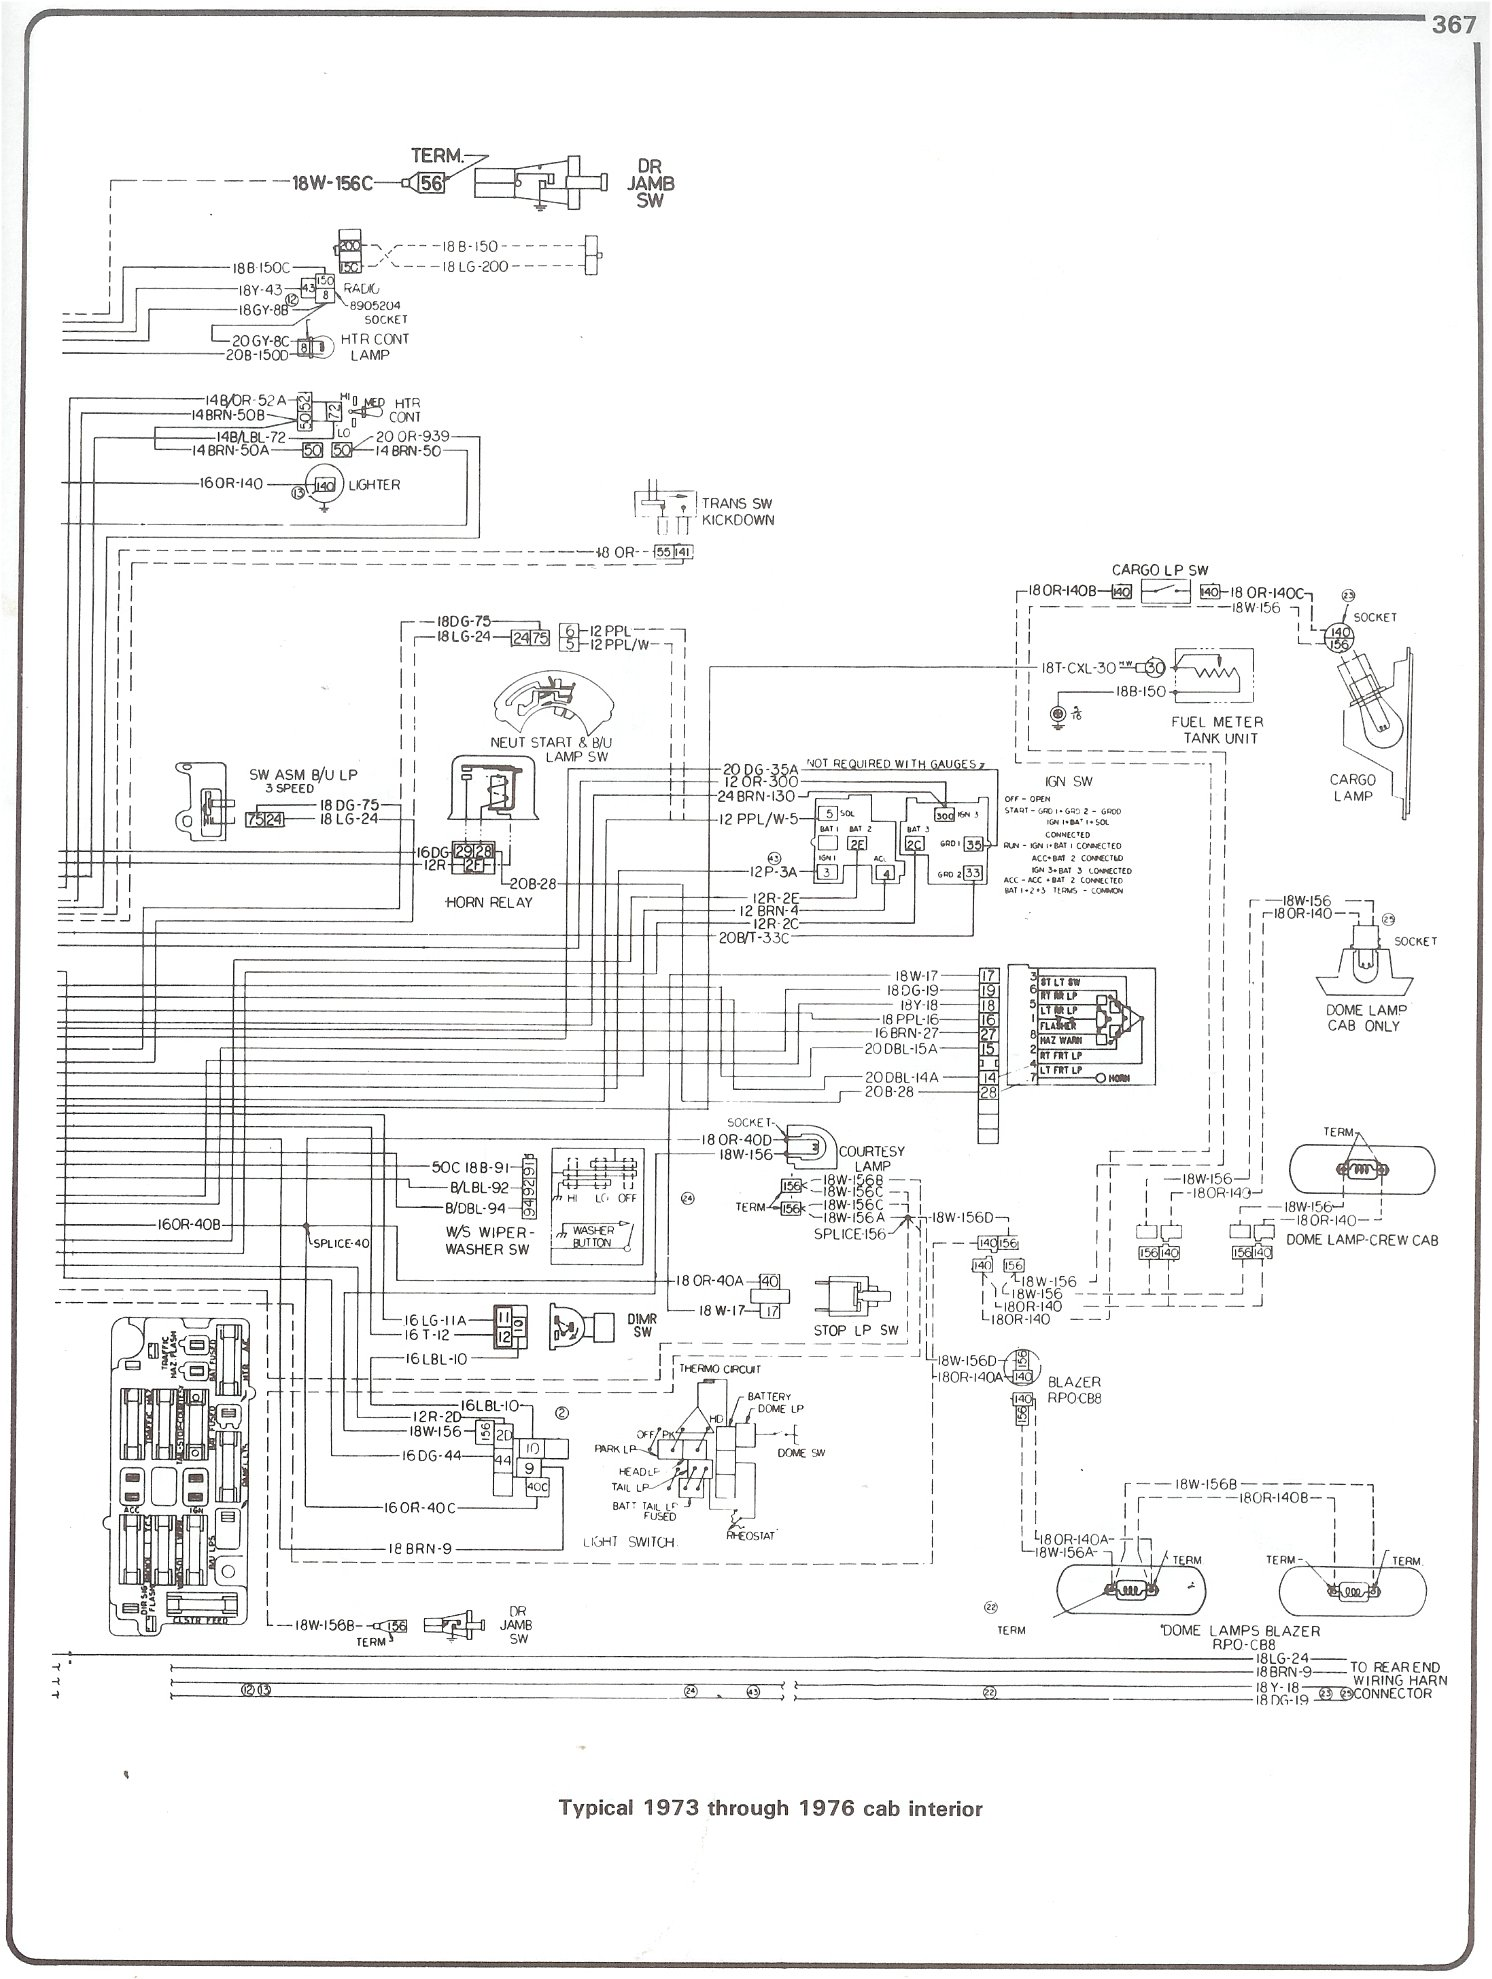 73 76_cab_inter complete 73 87 wiring diagrams 1968 Chevy C10 Wiring-Diagram at fashall.co